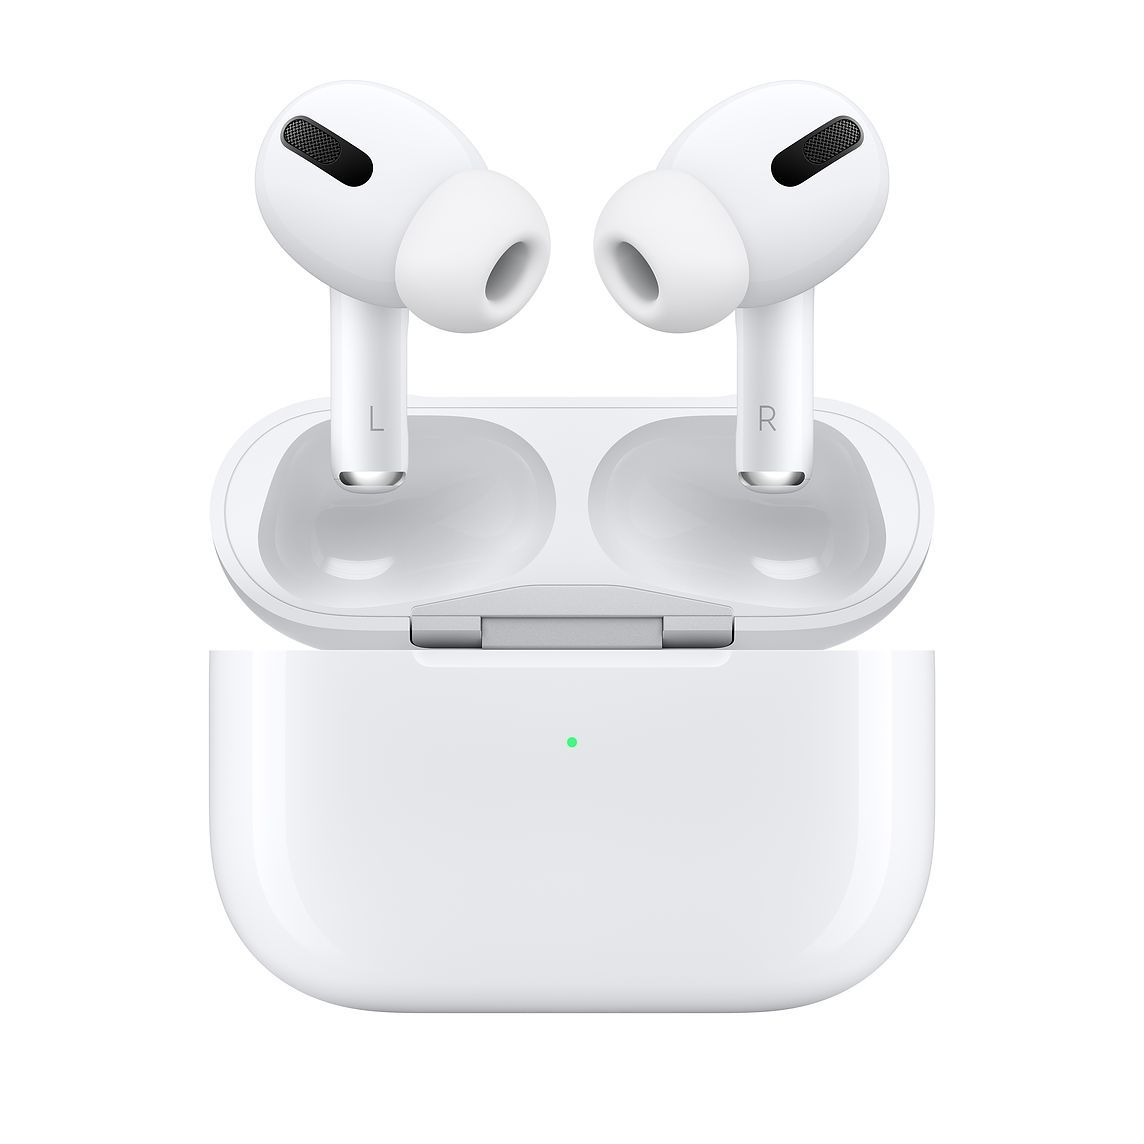 Buy Airpods Pro Airpods Pro Noise Cancelling Airpod Pro